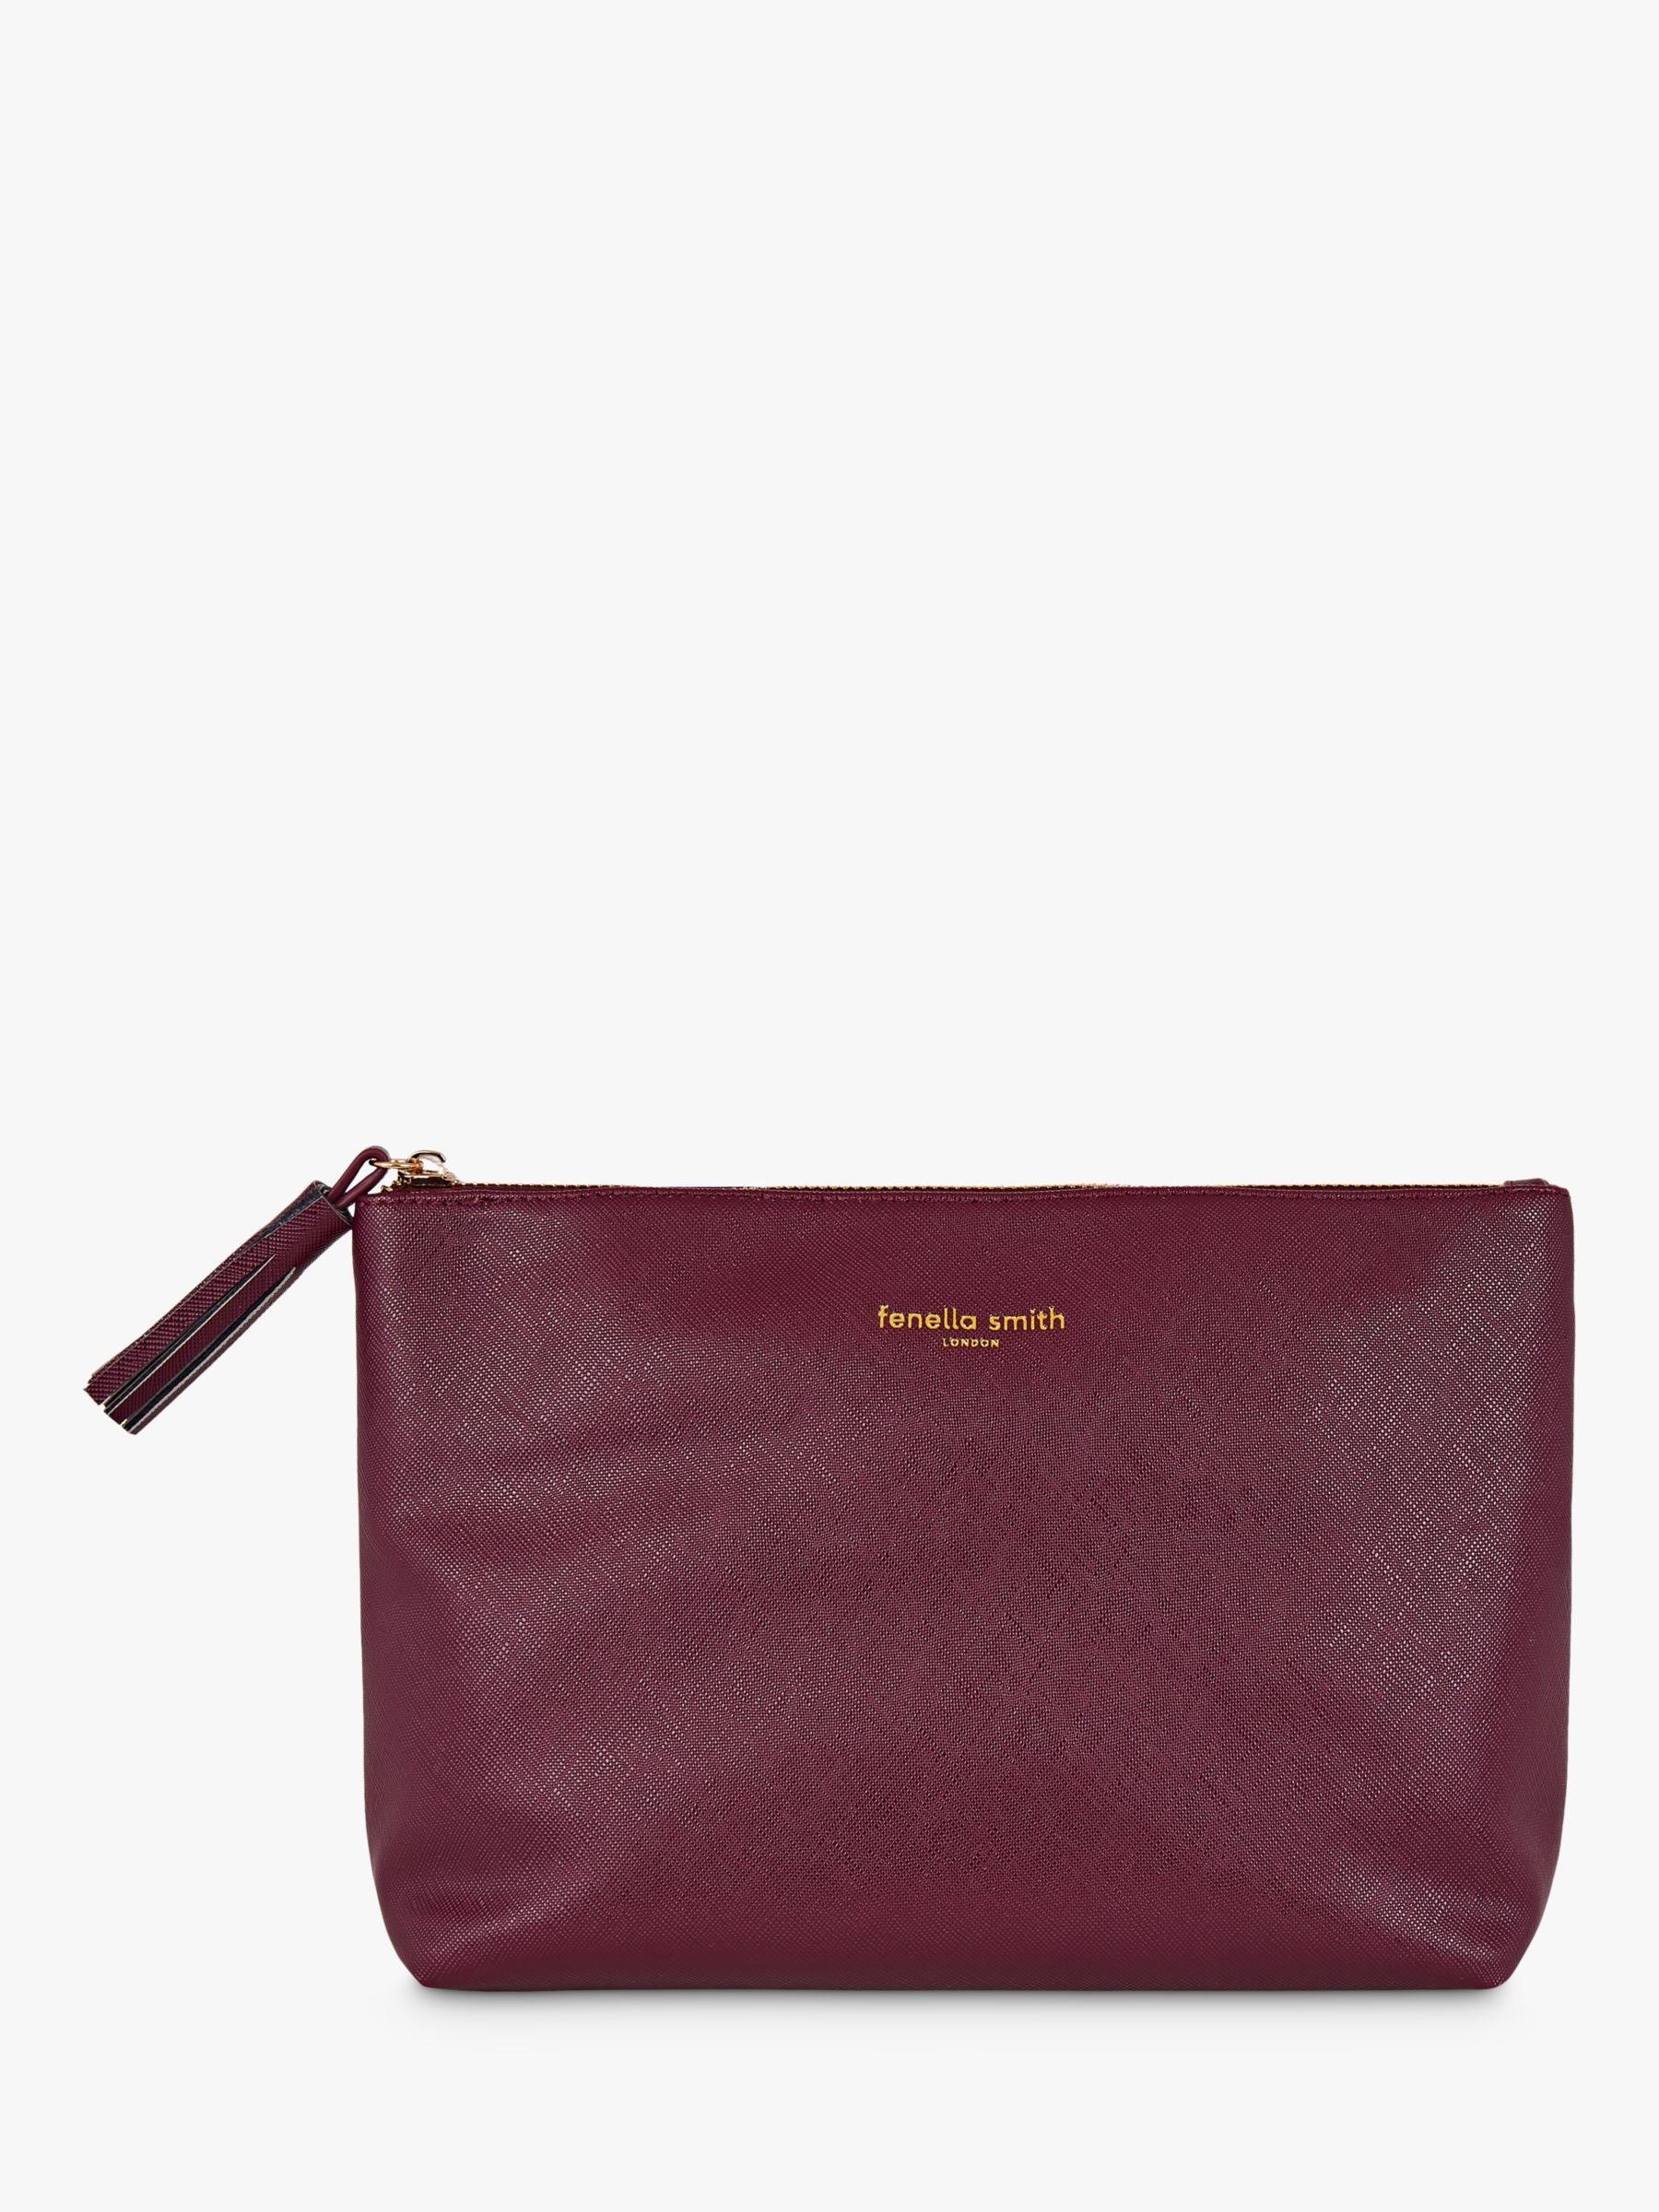 Fenella Smith Fenella Smith's Darcey Tassel Wash Bag